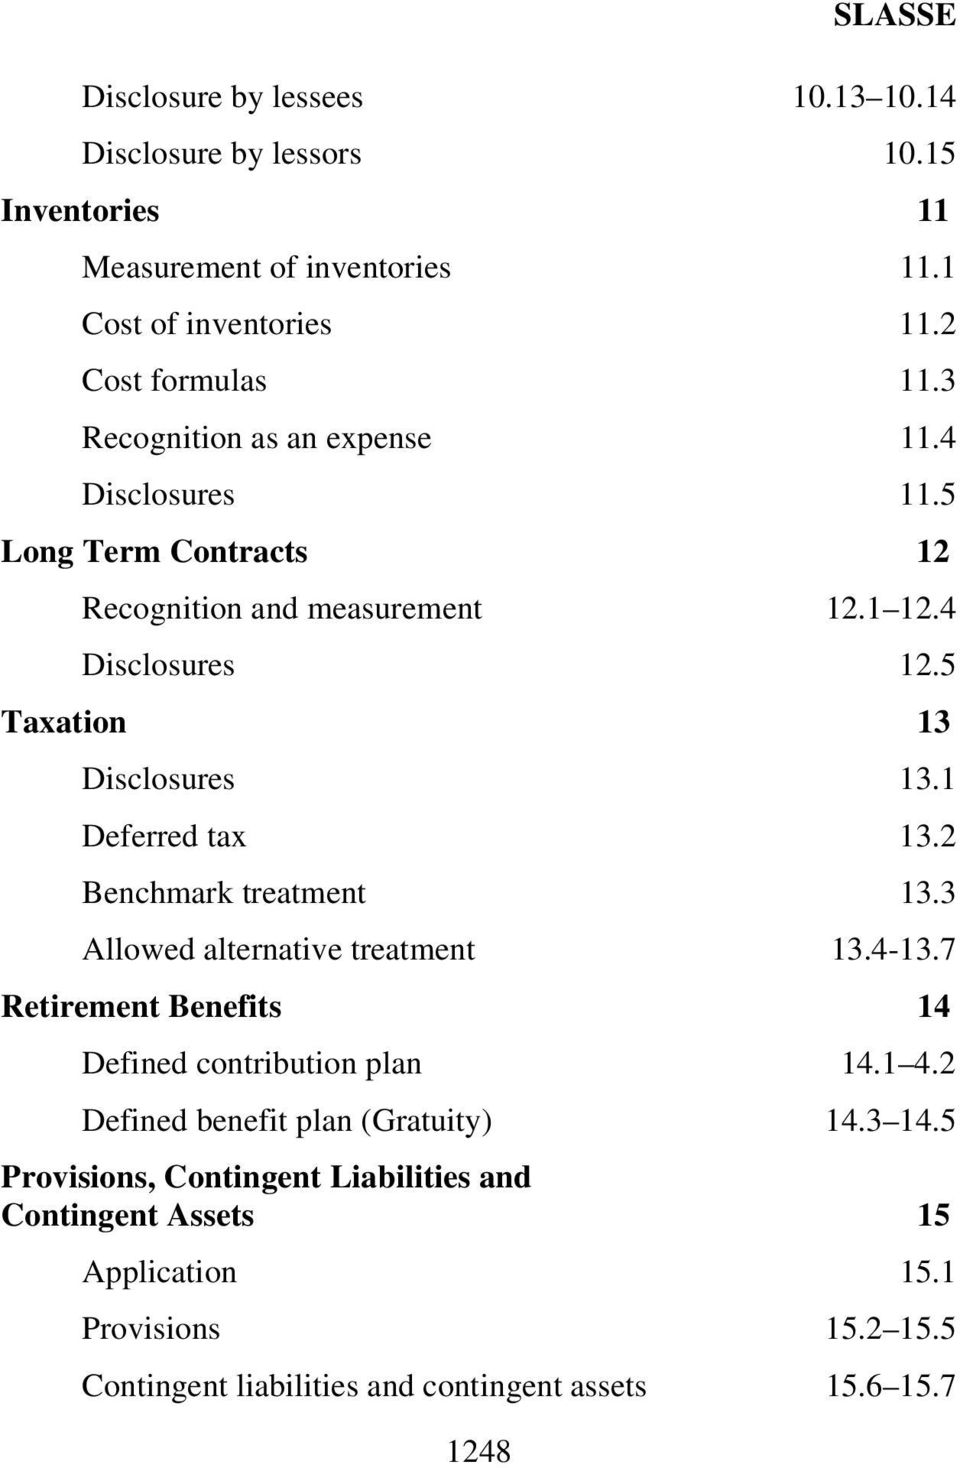 1 Deferred tax 13.2 Benchmark treatment 13.3 Allowed alternative treatment 13.4-13.7 Retirement Benefits 14 Defined contribution plan 14.1 4.